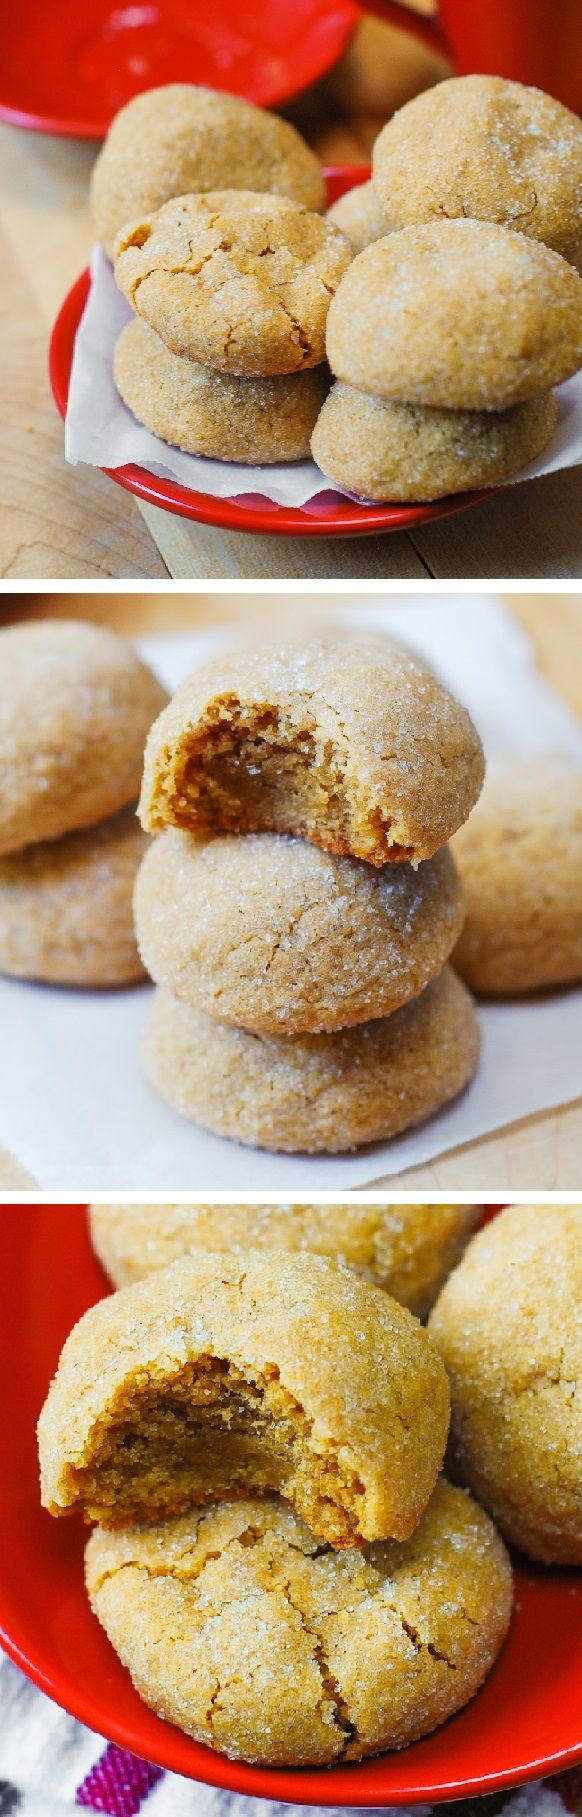 The best peanut butter cookies! Delicious brownie-like texture: chewy and soft at the same time